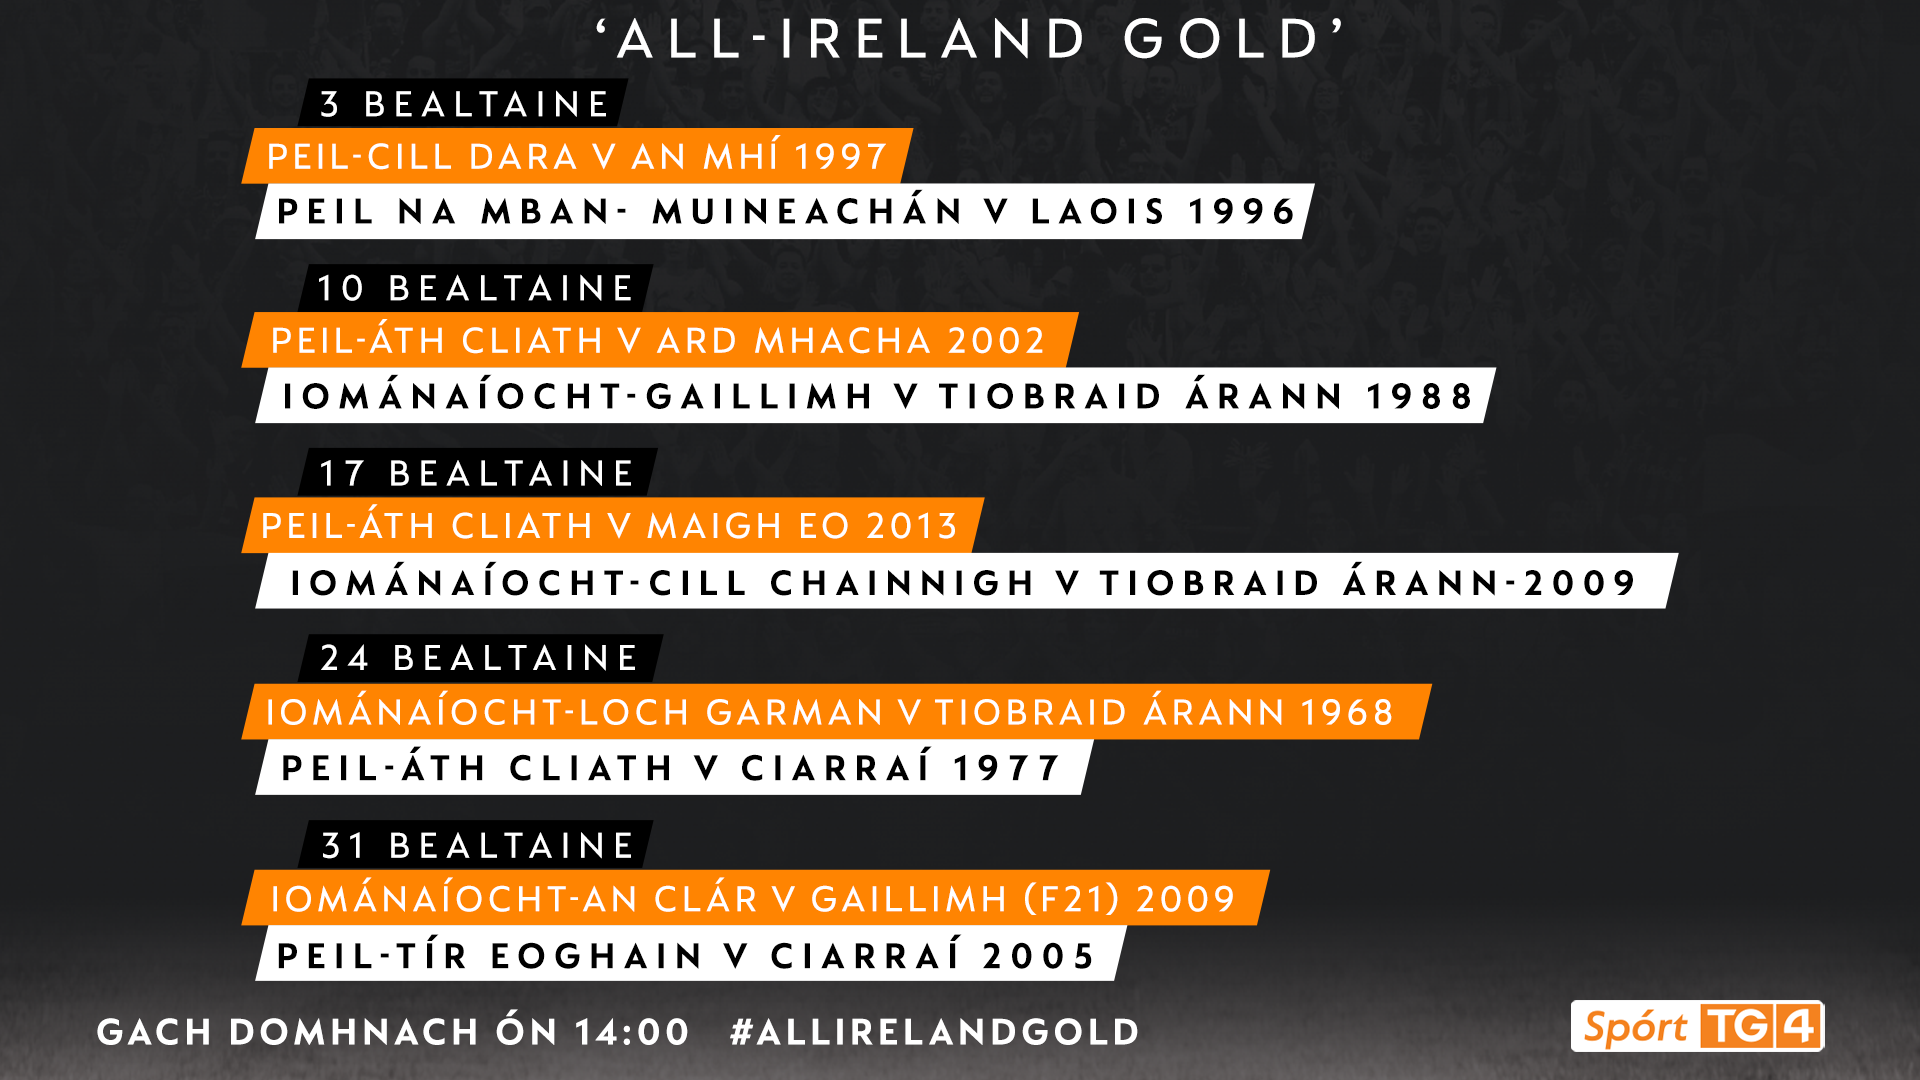 Another month of classic matches ahead as TG4 announce All Ireland Gold schedule for May #AllIrelandGold